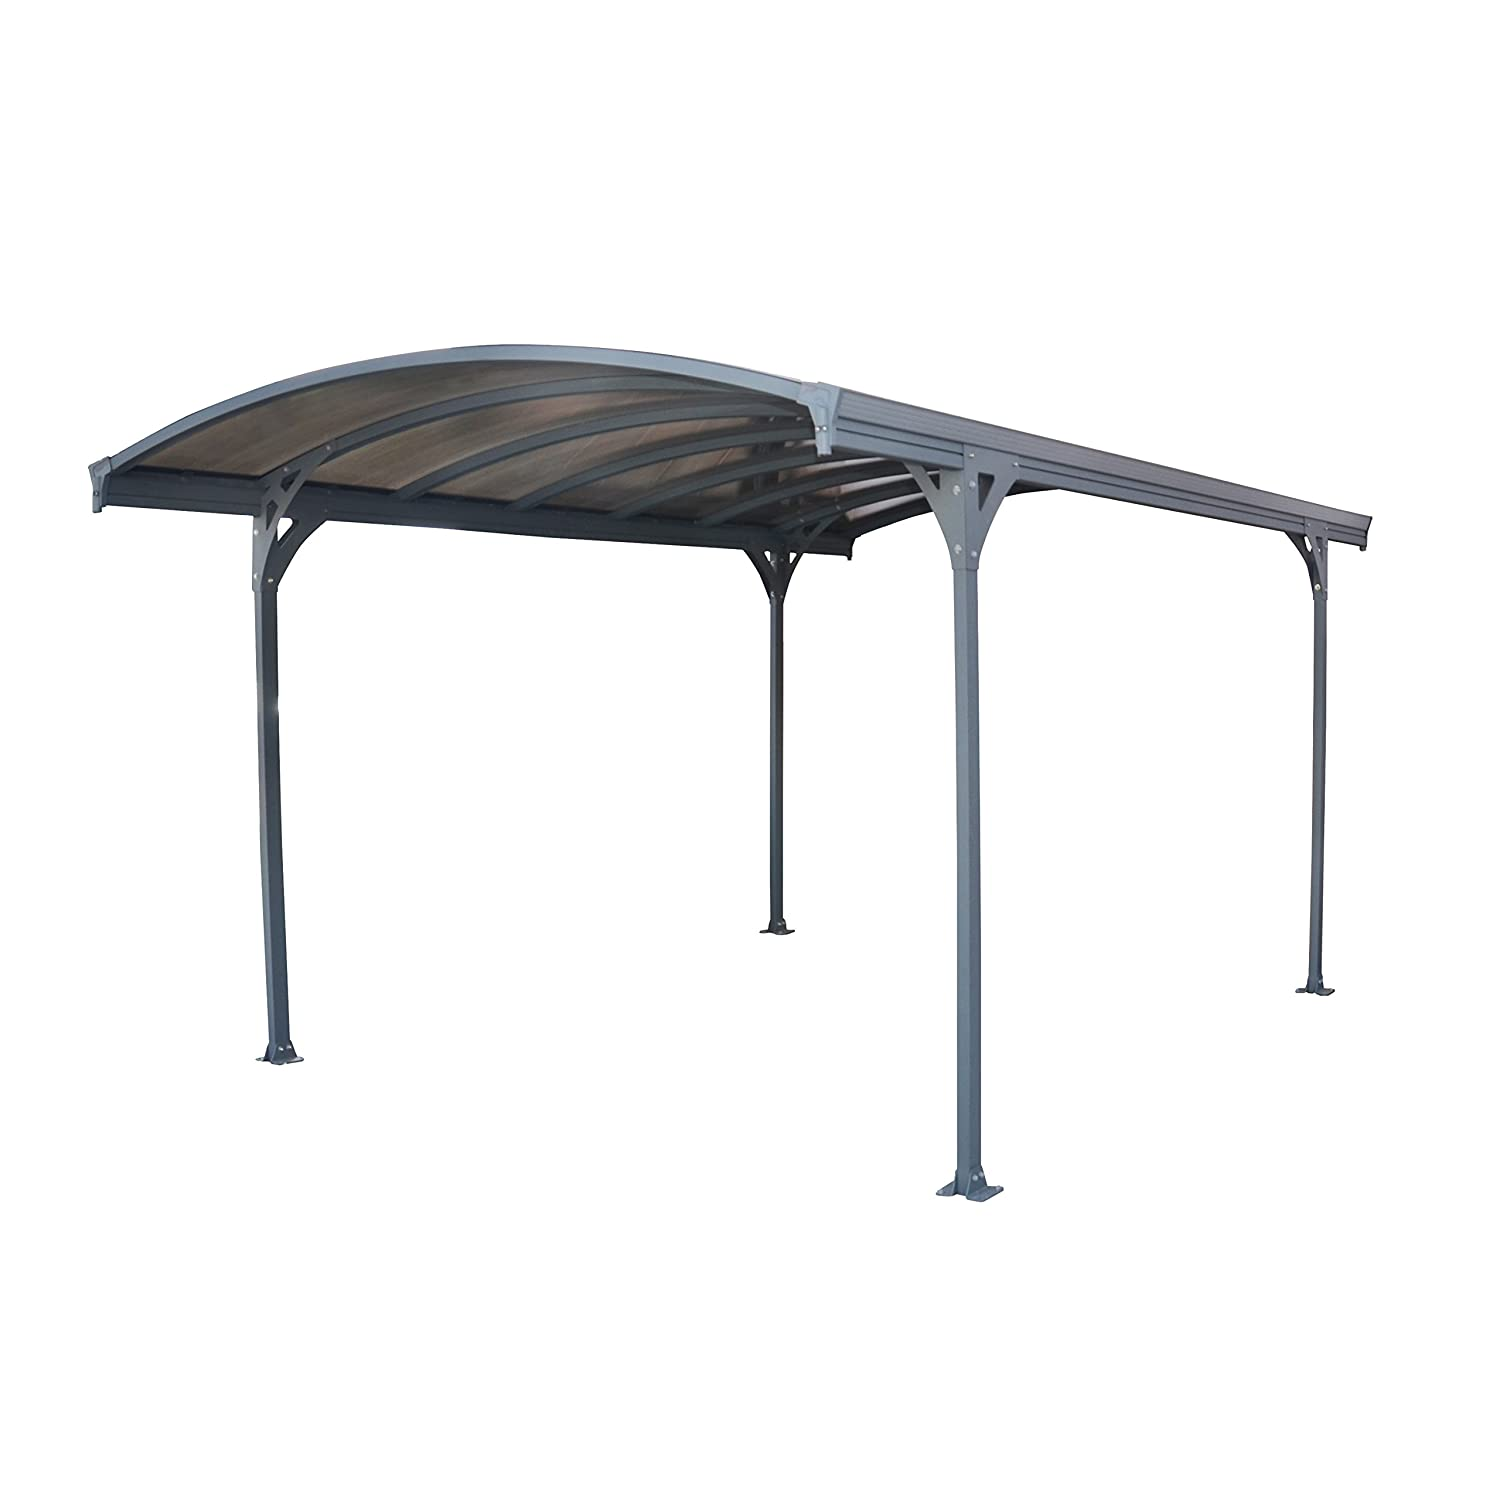 Palram Vitoria Carport & Patio Cover - 16' x 10' HG9130